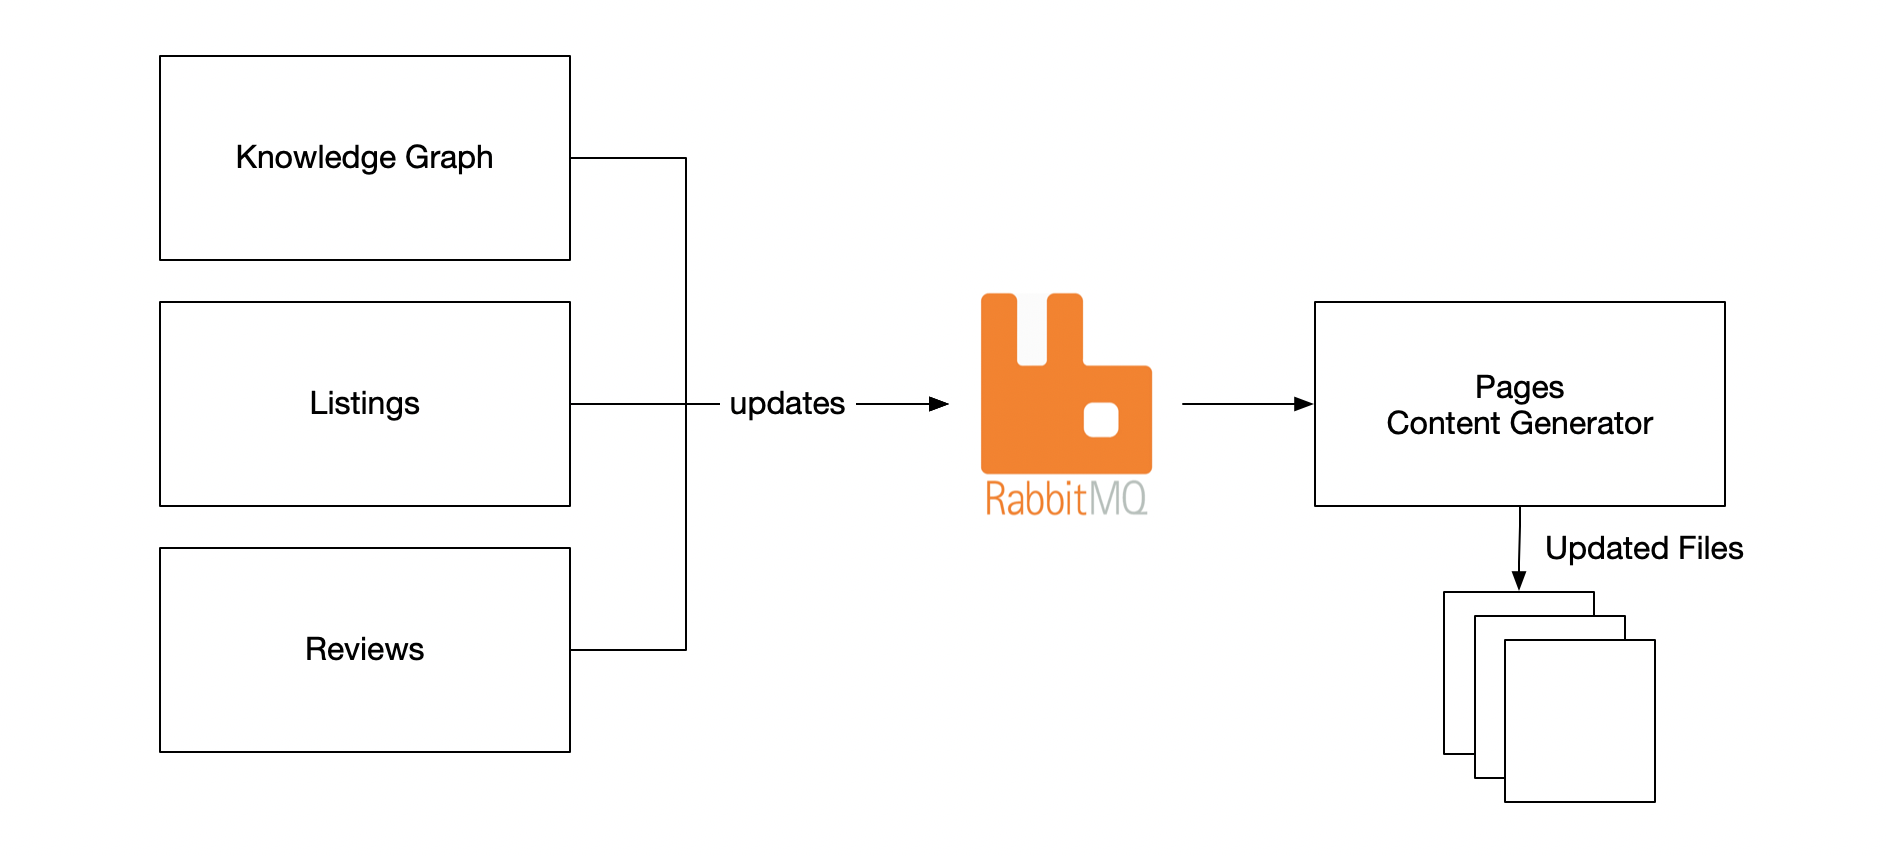 Source system updates flowing to Content Generator via RabbitMQ